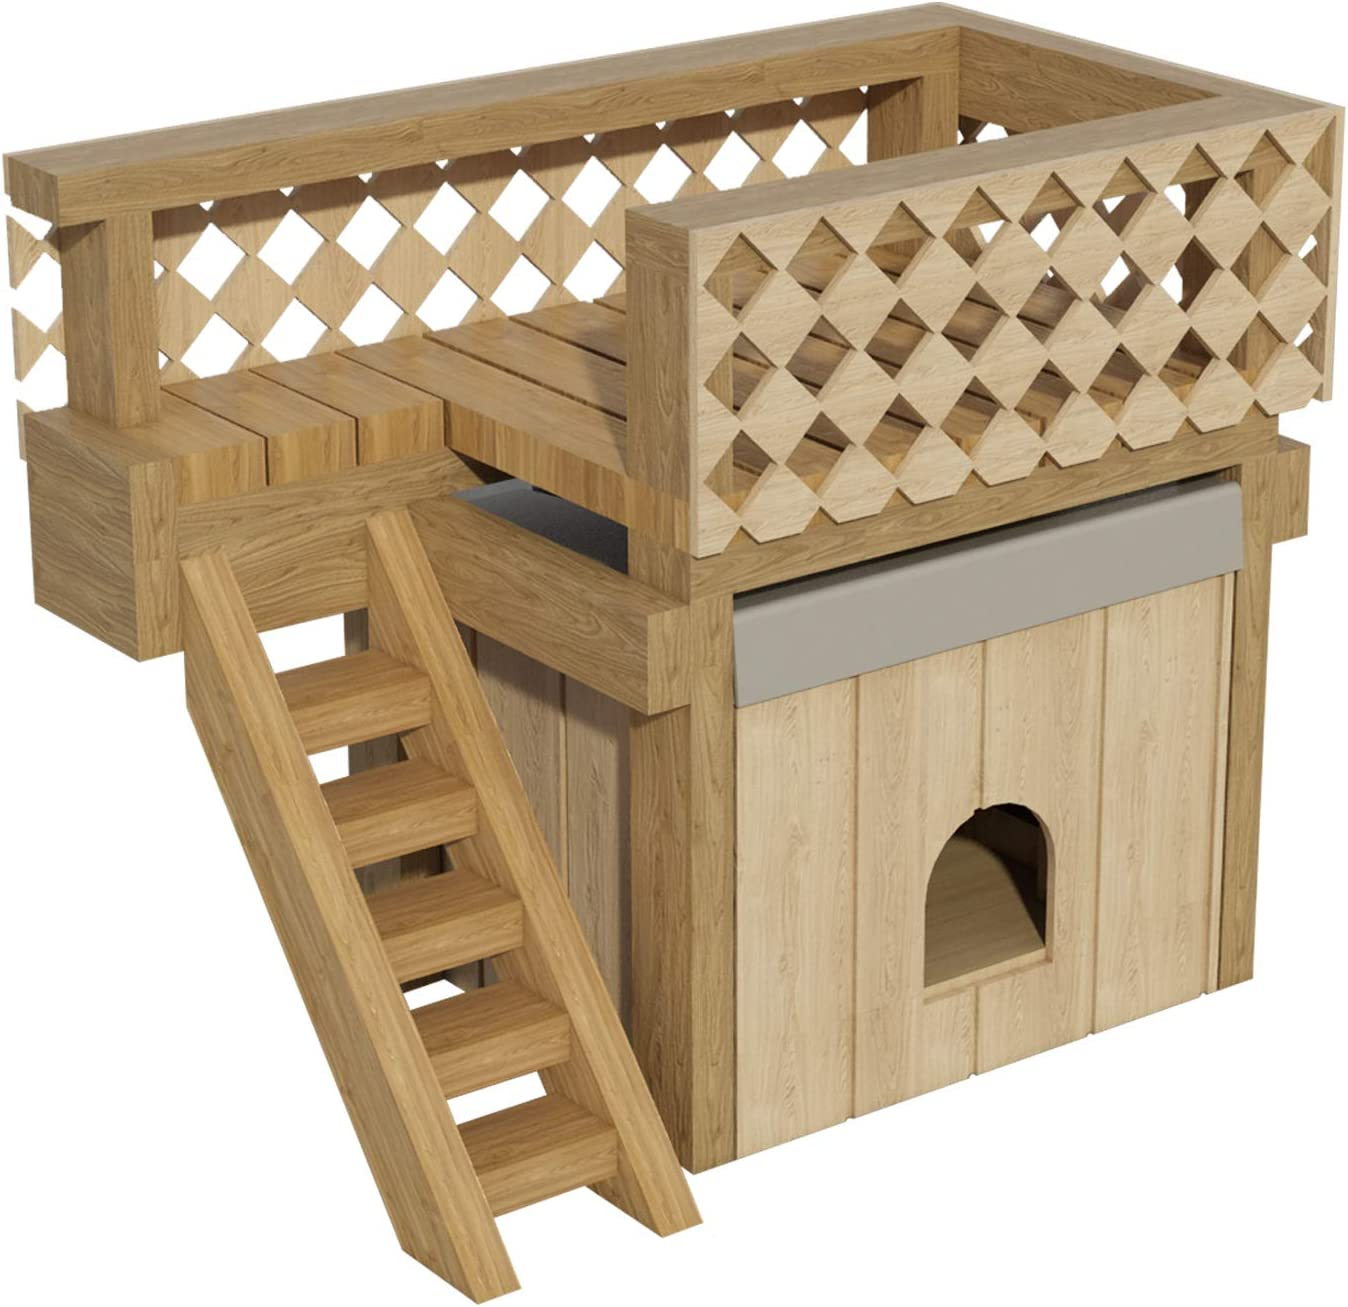 Amazon Com Dog House Plans W Roof Deck Diy Small Outdoor Wooden Kennel Pet Home Shelter Home Improvement